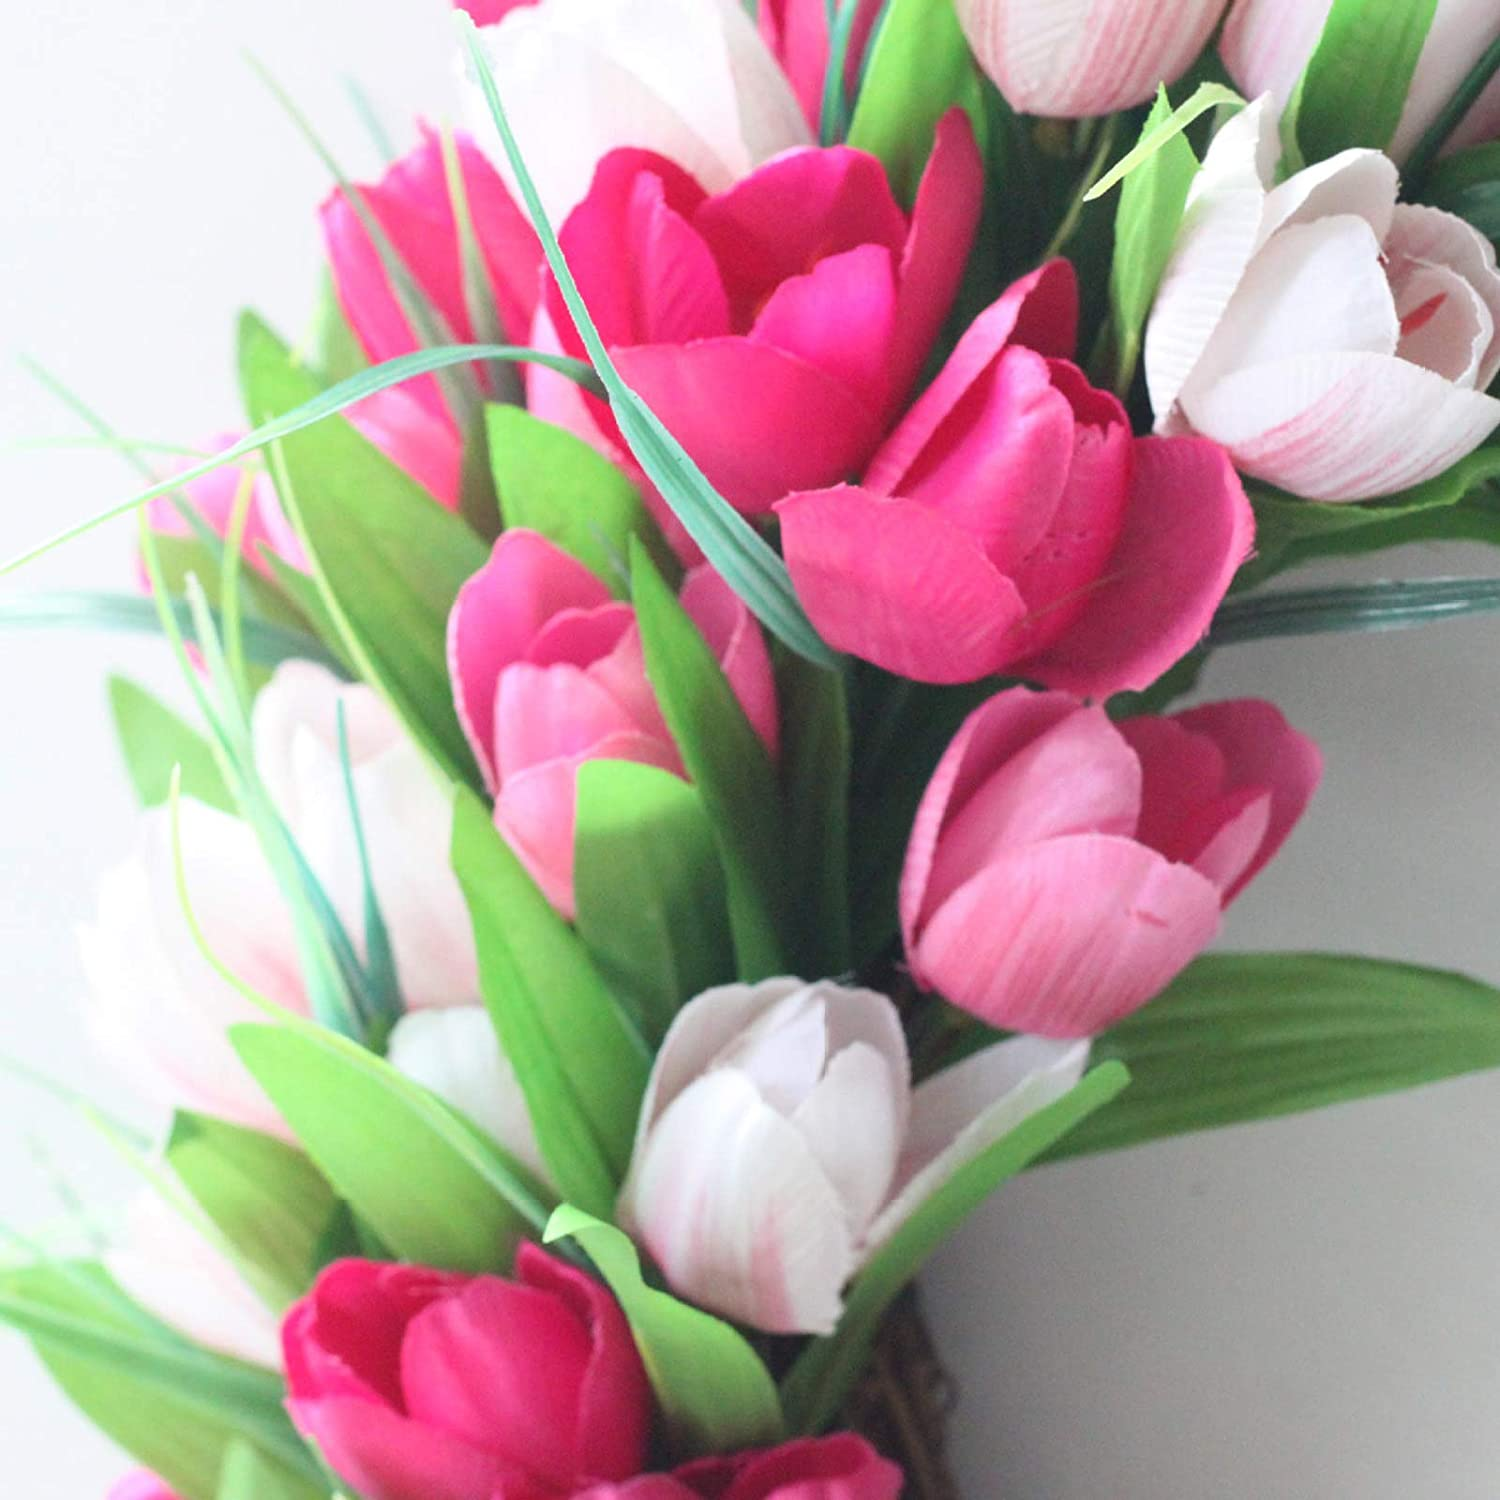 Home Fake Flower Wreaths for Spring 19.7 Inch Pink Tulip Wreath Rtway11 Artificial Tulip Flower Wreath for Front Door Summer Winter Wedding